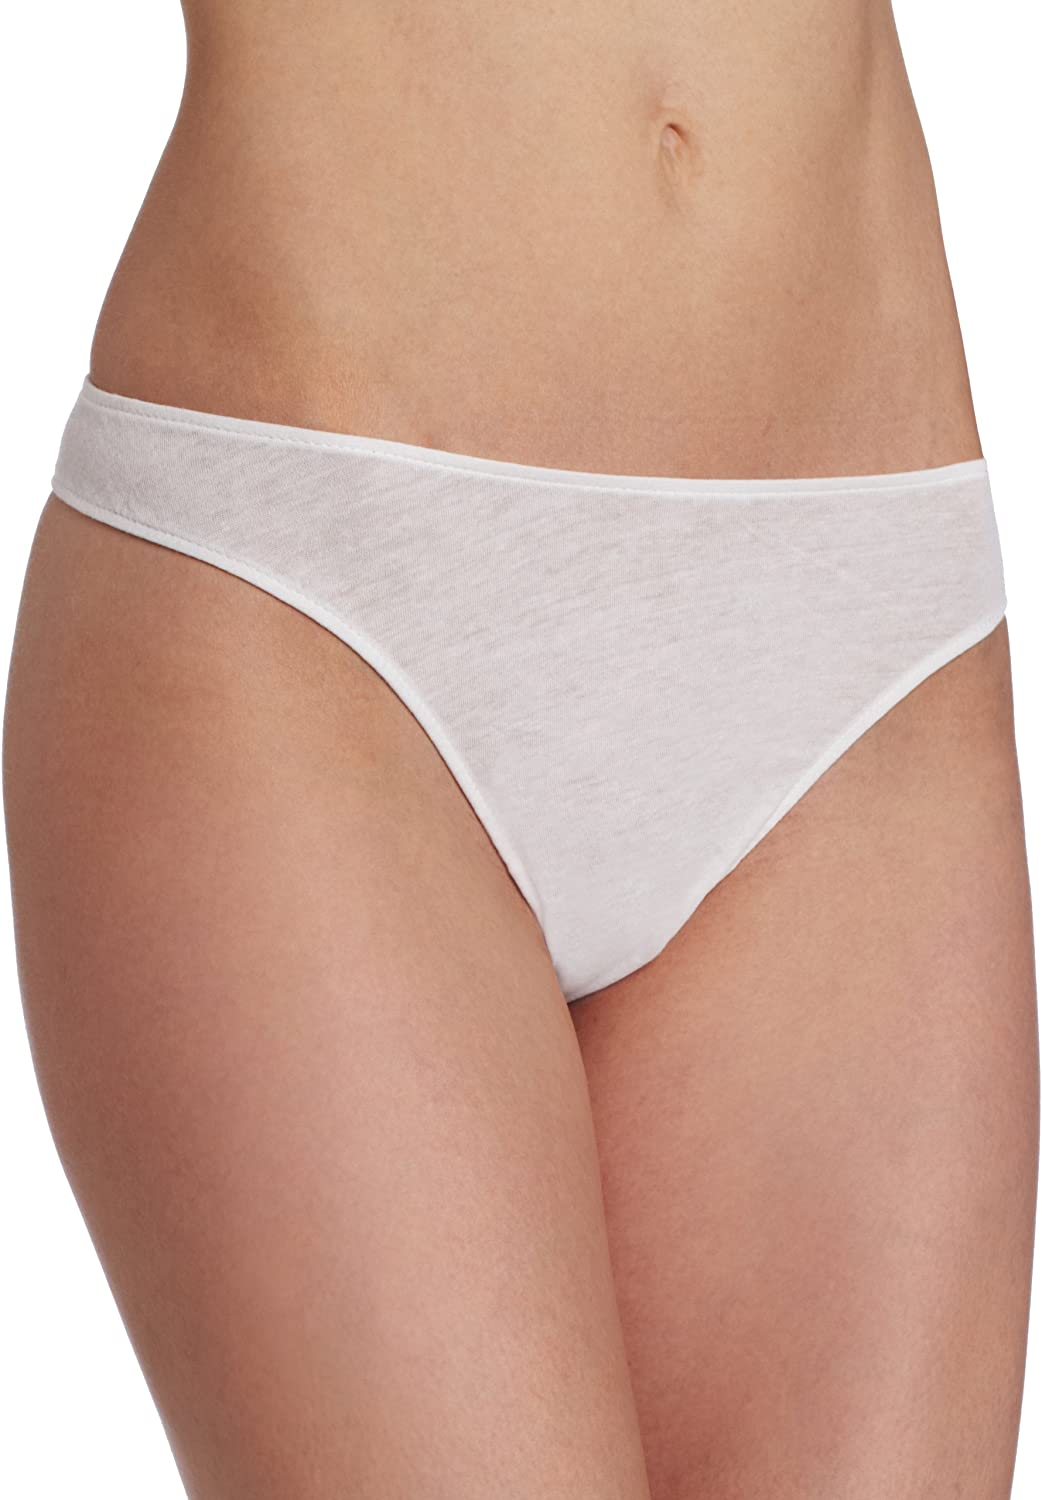 Only New Shipping Free Hearts Women's Quantity limited Organic Panty Cotton Thong Basic